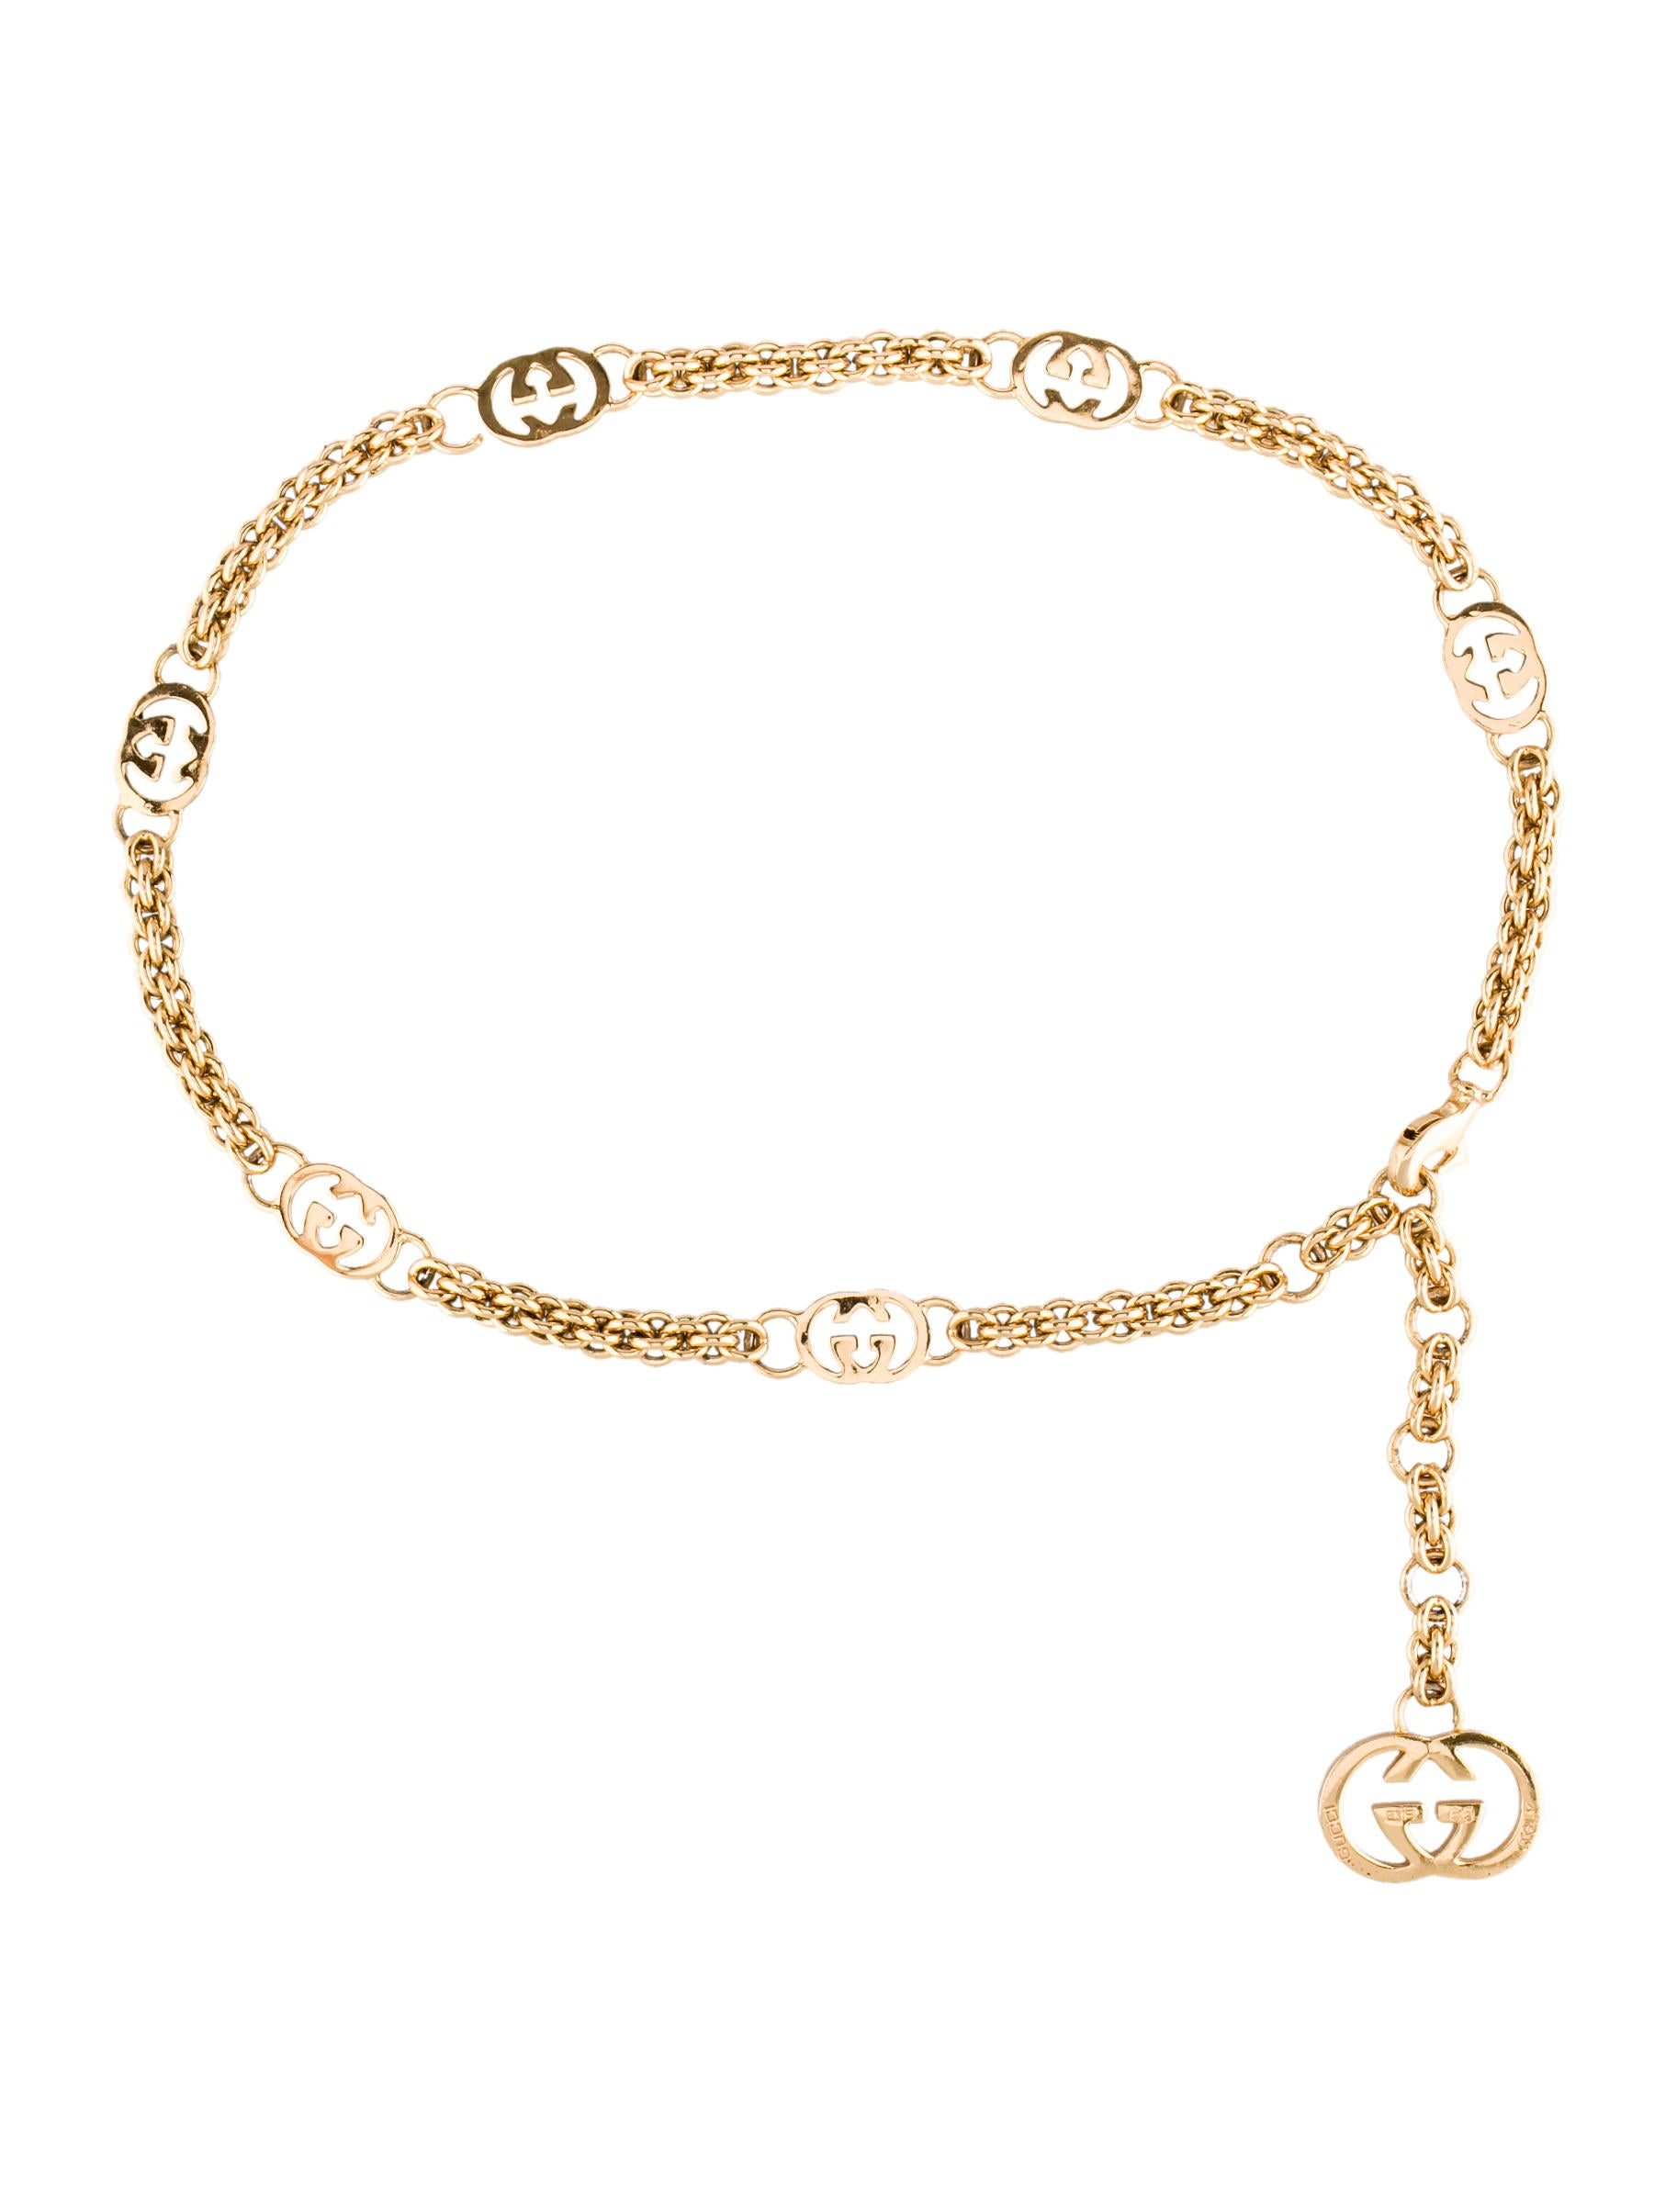 Gucci Chain Belt - Accessories - GUC36110 | The RealReal